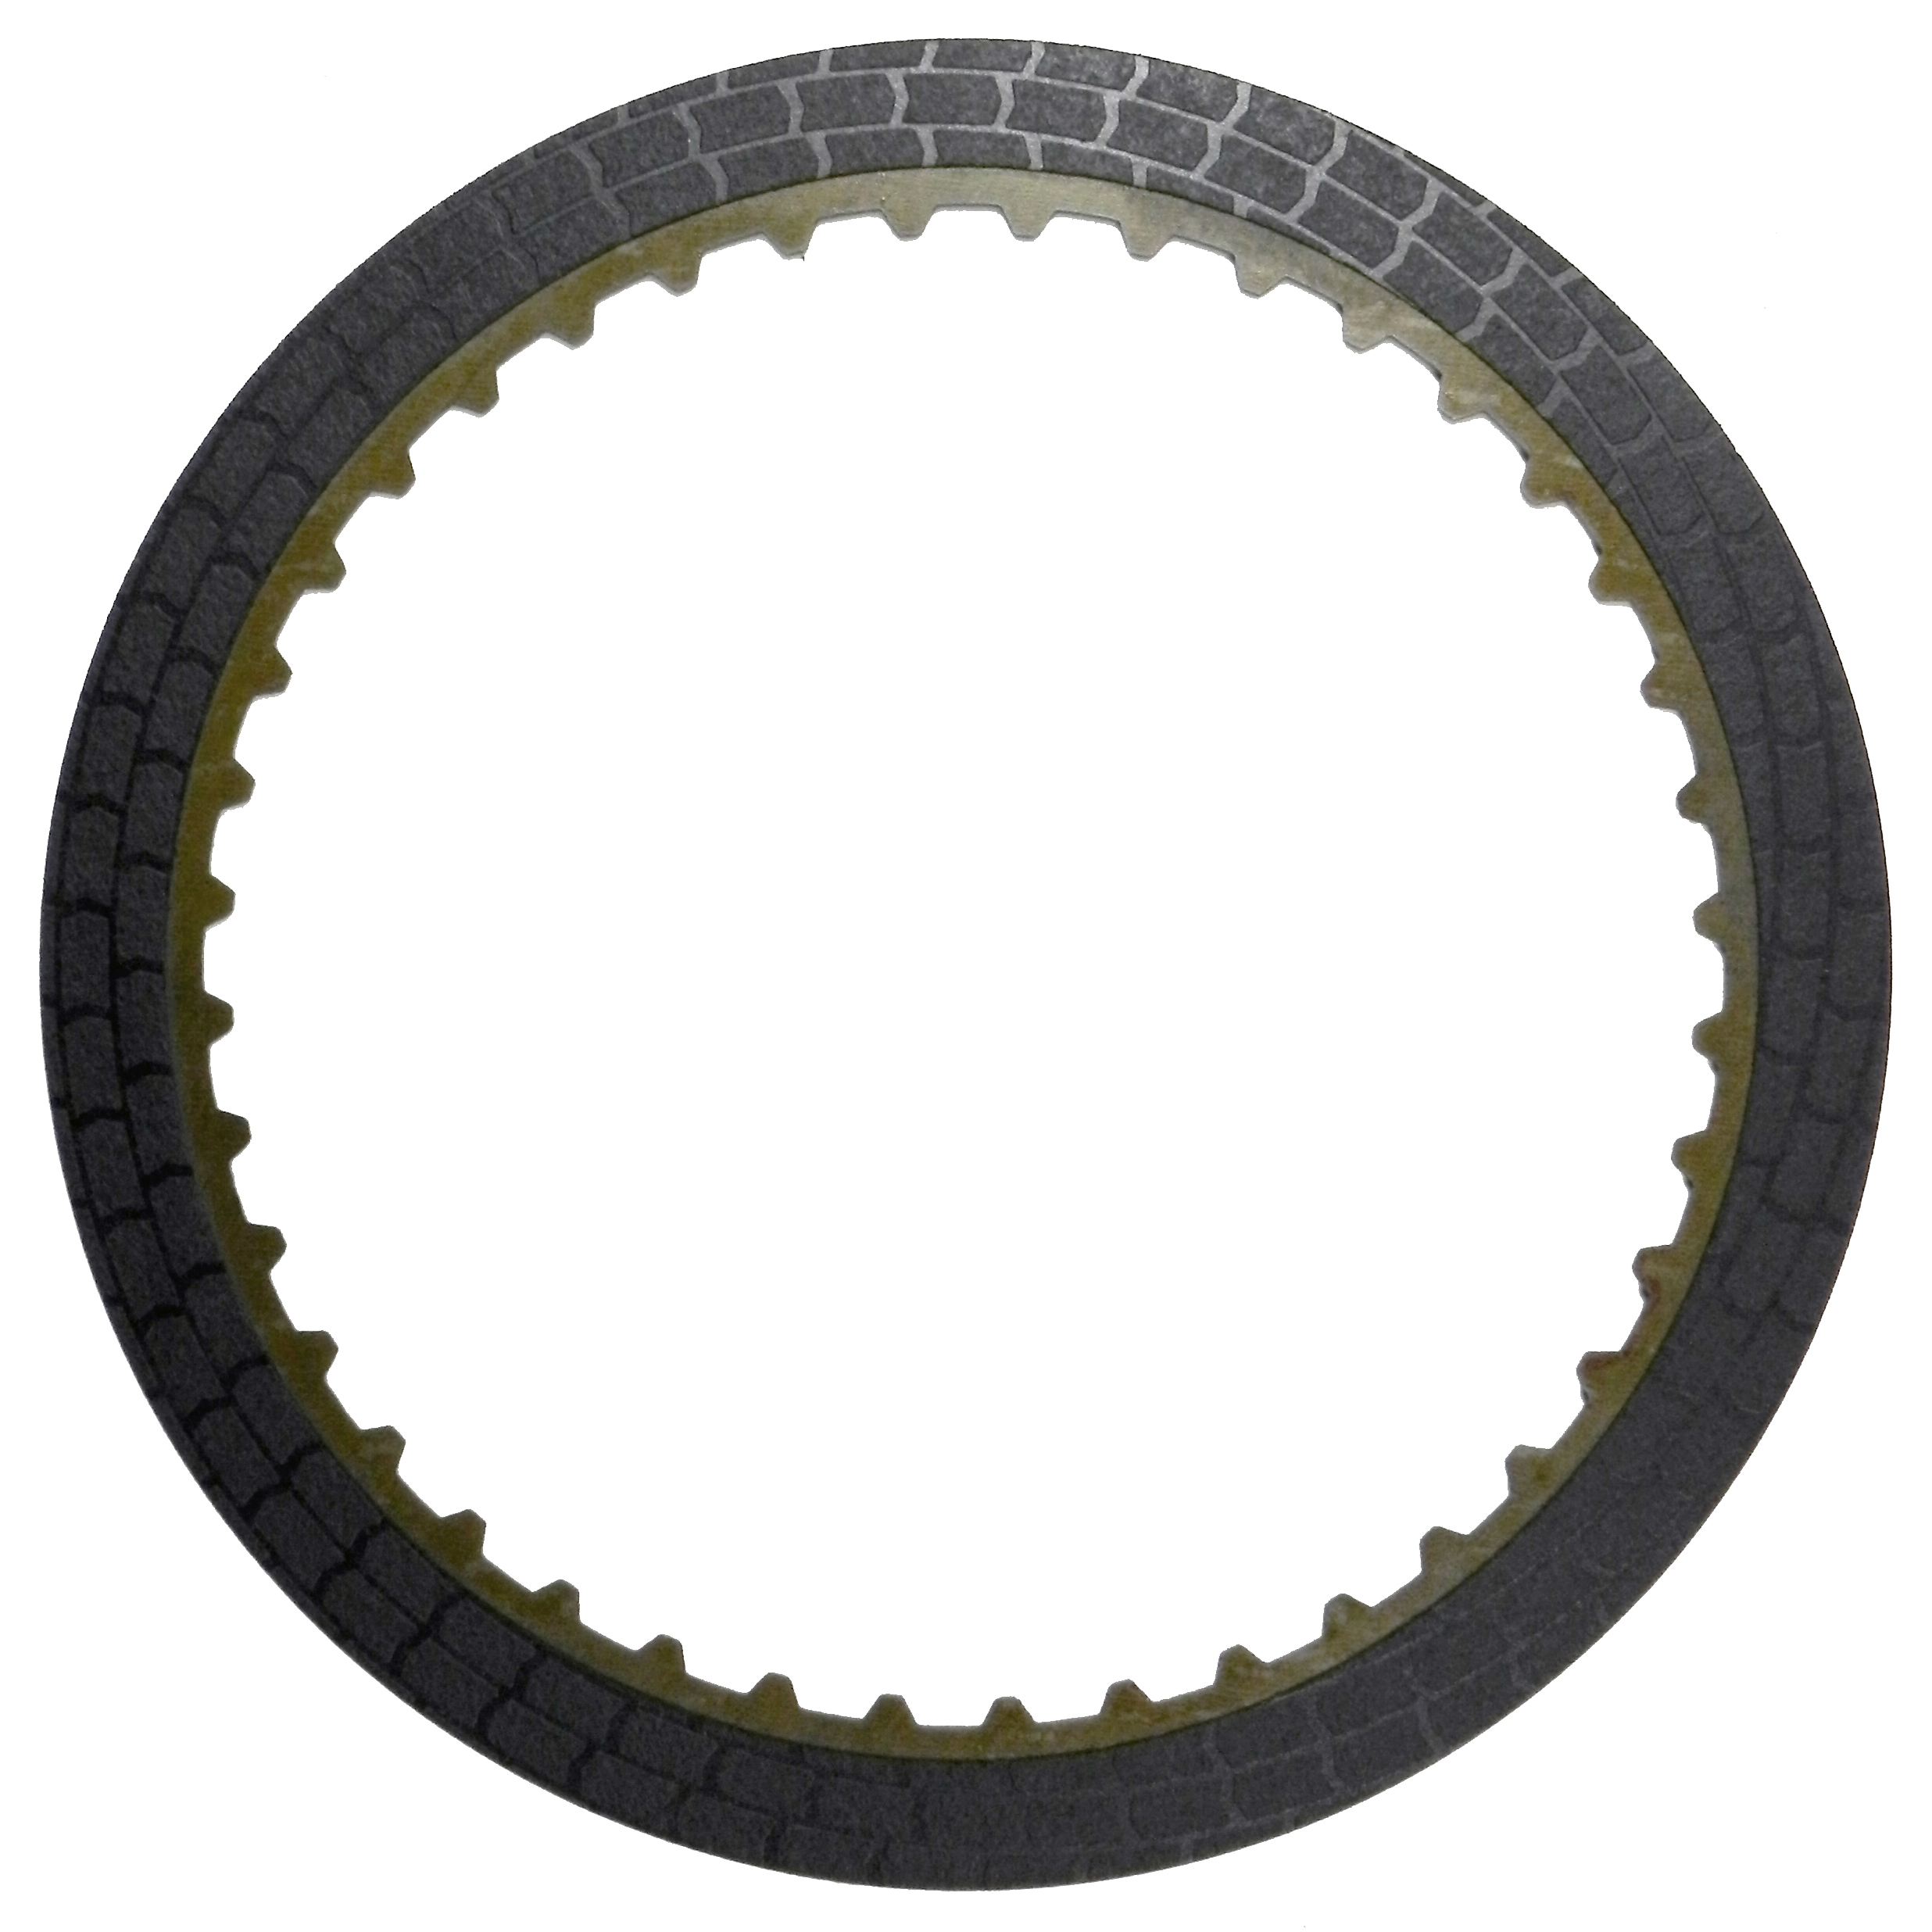 RH550065 | 2012-ON Friction Clutch Plate (HT) Hybrid Technology 3, 5, Reverse Brake Clutch Proprietary High Energy (HT)